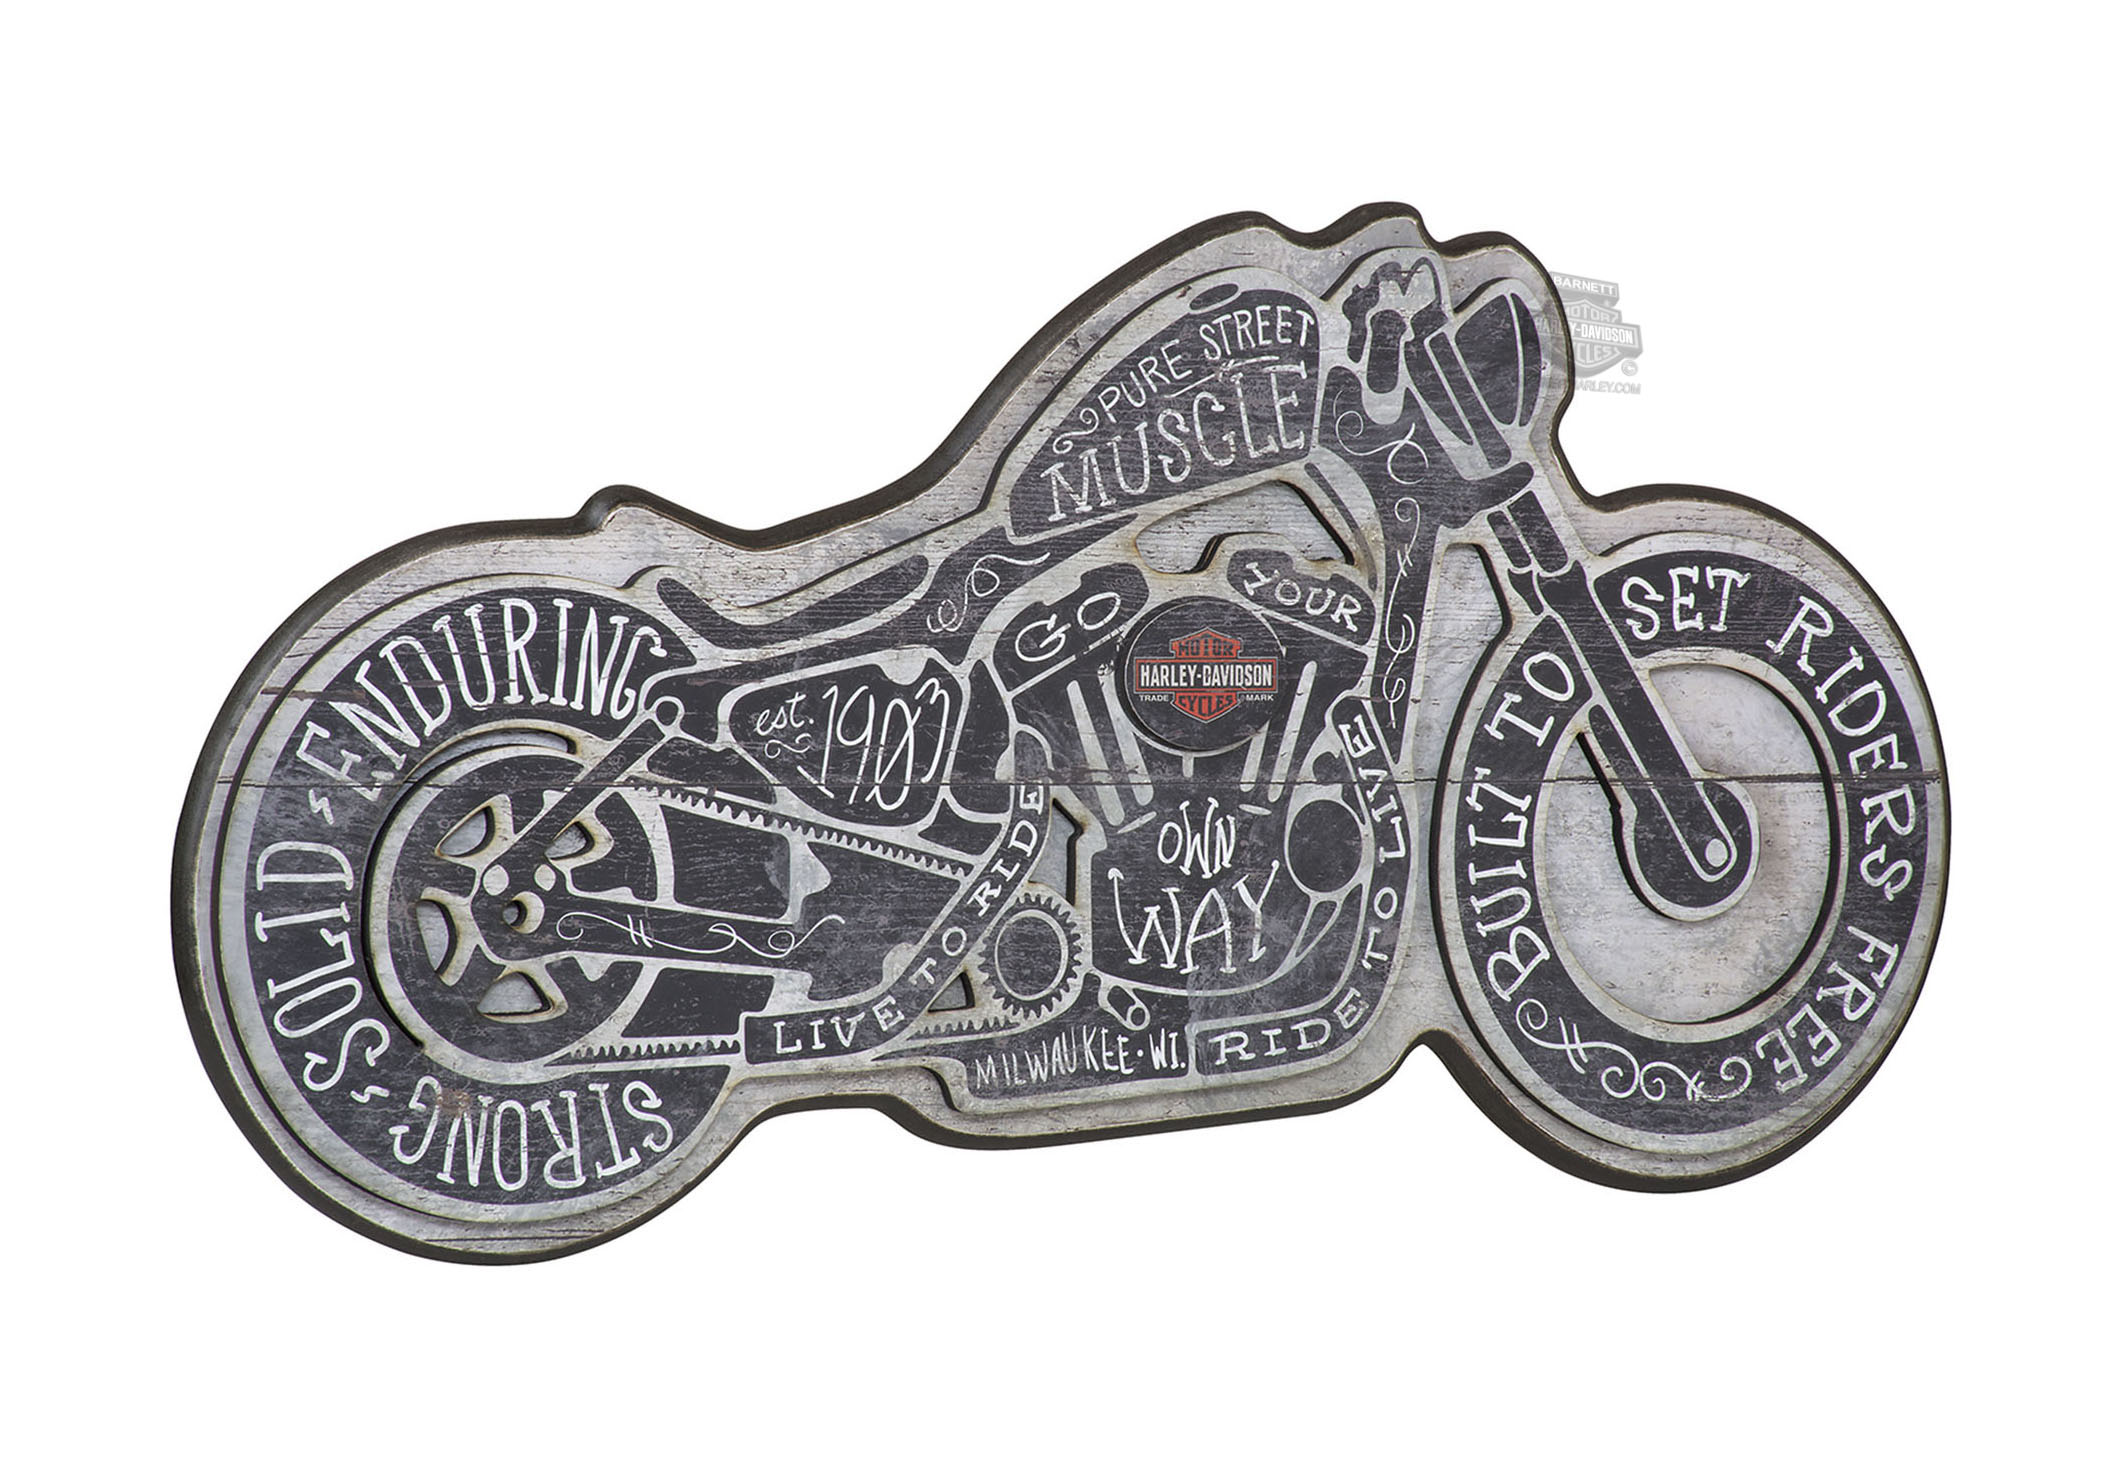 Hdl 15319 Harley Davidson 174 Street Muscle Motorcycle